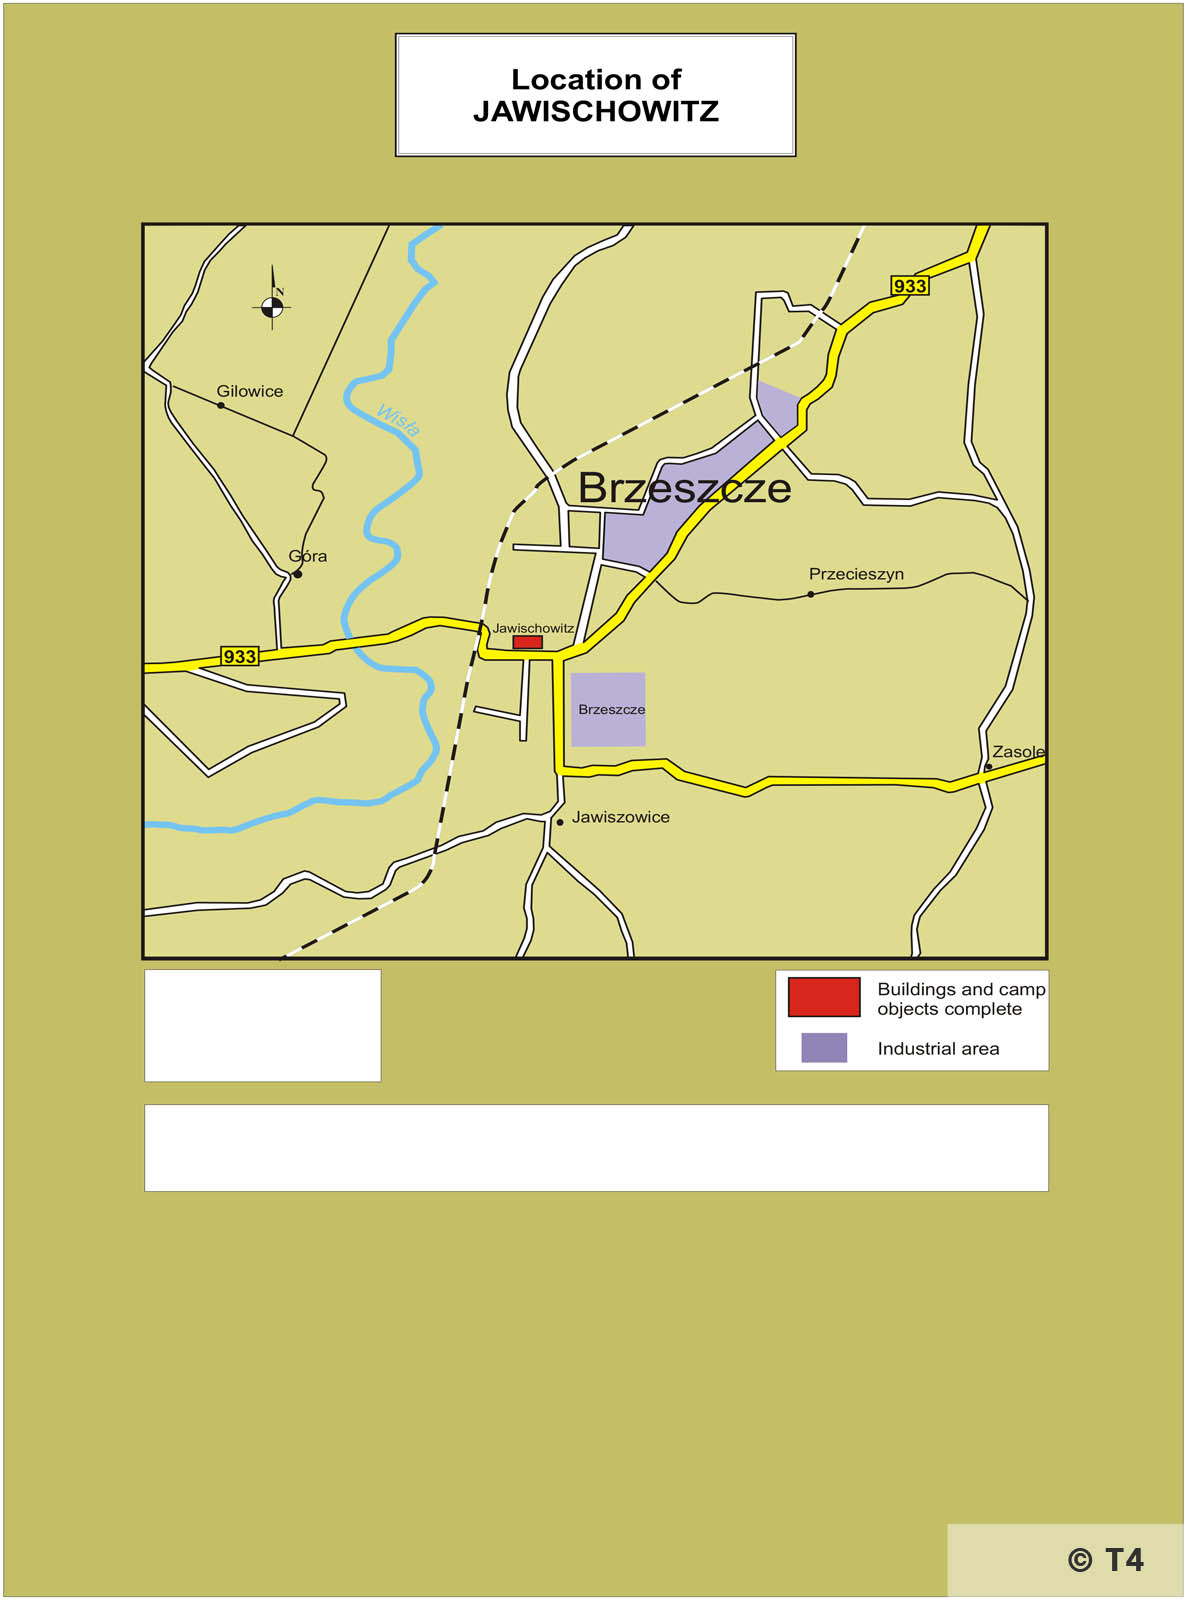 Location of Jawischowitz. T4